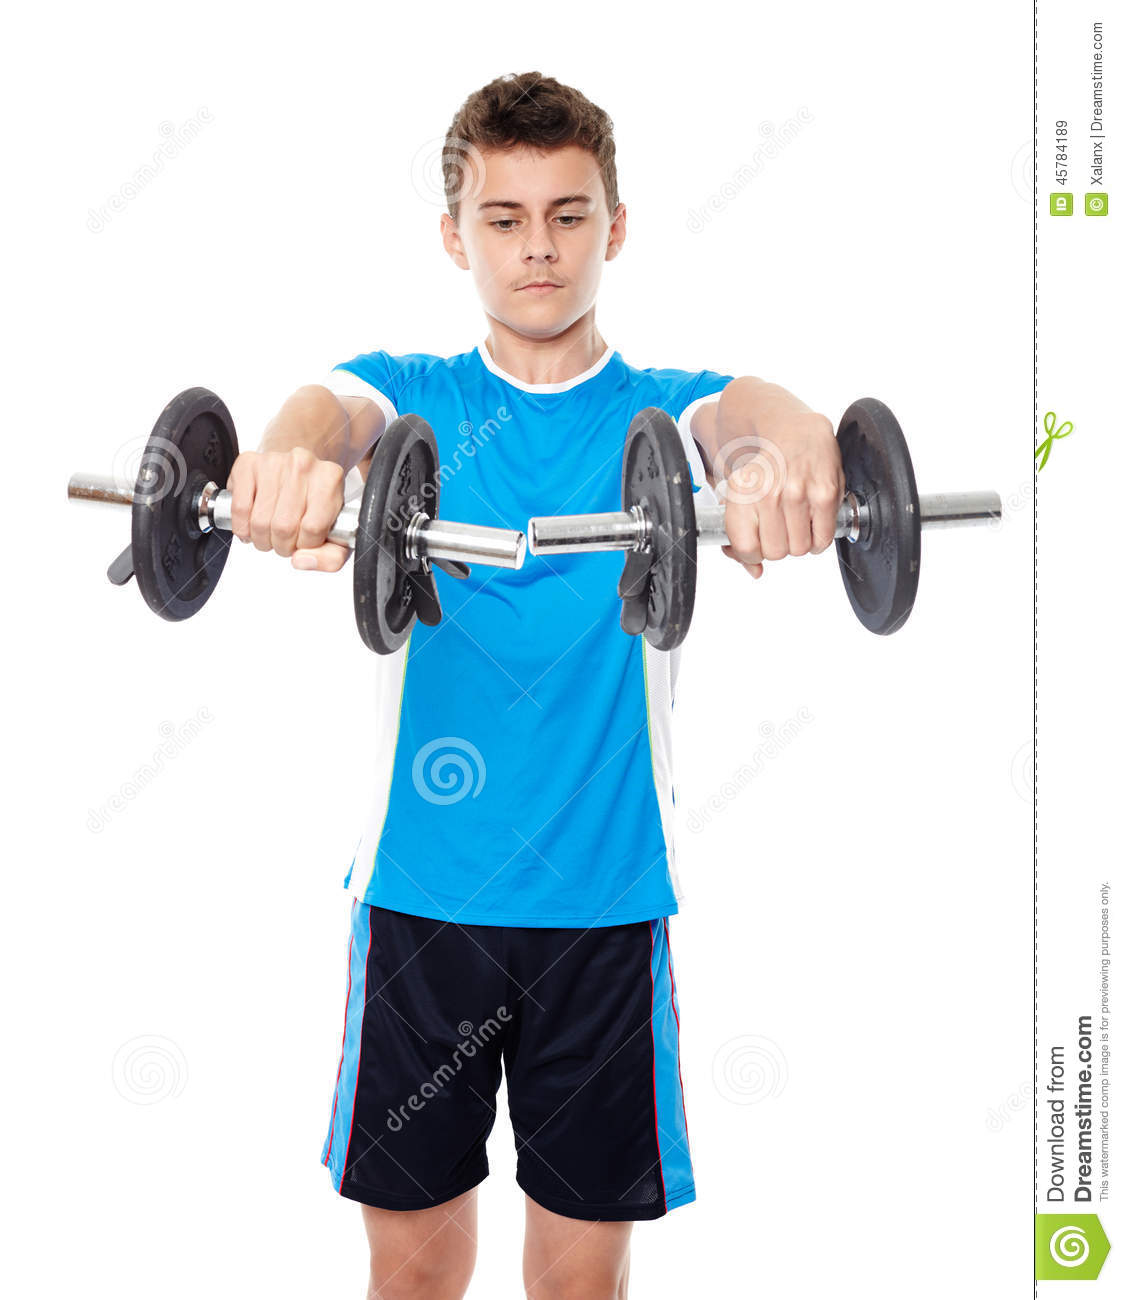 Teenage boy working out stock image. Image of fitness